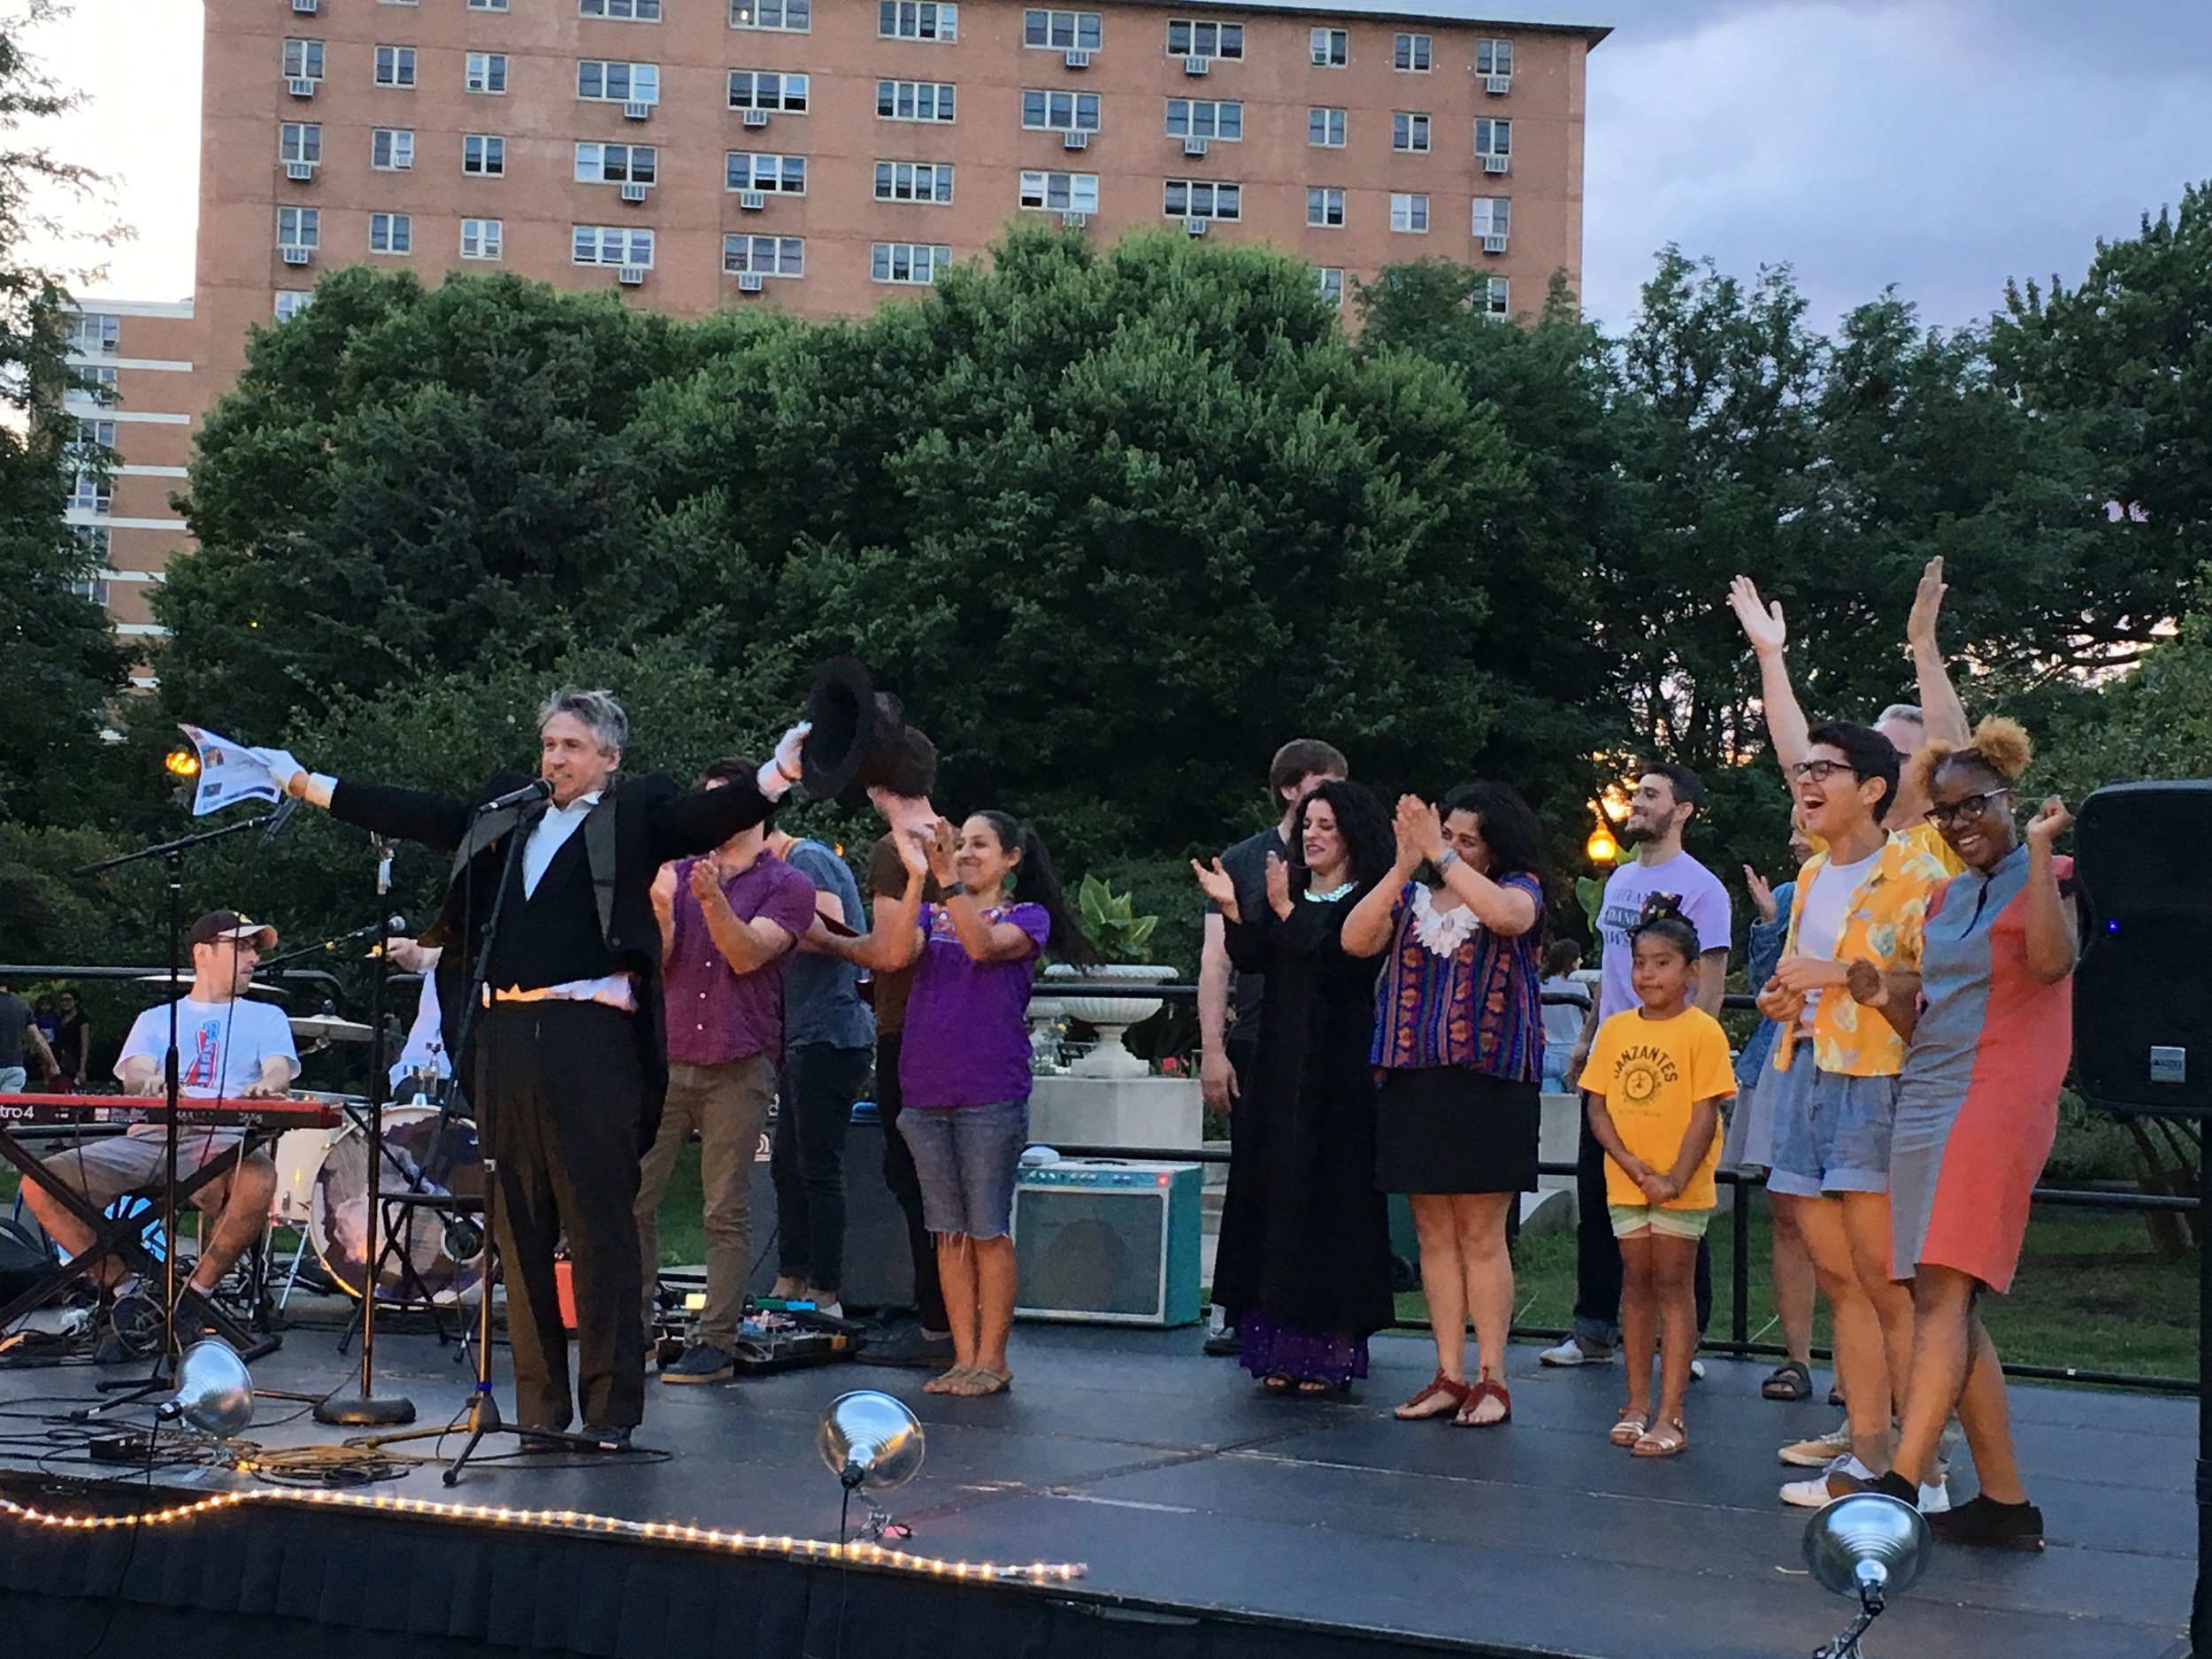 Vaudeville Nights 2019 - Voice of the City and Night Out in the Parks presentSummer means Voice of the City's Vaudeville Nights as part of Night Out in the Parks!Vaudeville Nights! Our next show: Come join us Friday, July 12th at 7pm at Columbus Park, 500 S Central Ave. for free show of amazing entertainment!Music, circus, puppetry, dance from the likes of: Bassel & the Supernaturals, Elastic's Sam Samuel J Lewis II, jugglers: Brad French, Dharmesh Bhagat, and Jason Kollum, Ballet 5:8, singers: Alleh Garcia and Teressa Kuruvilla. All that and so much as part of Voice of the City's Vaudeville Nights!